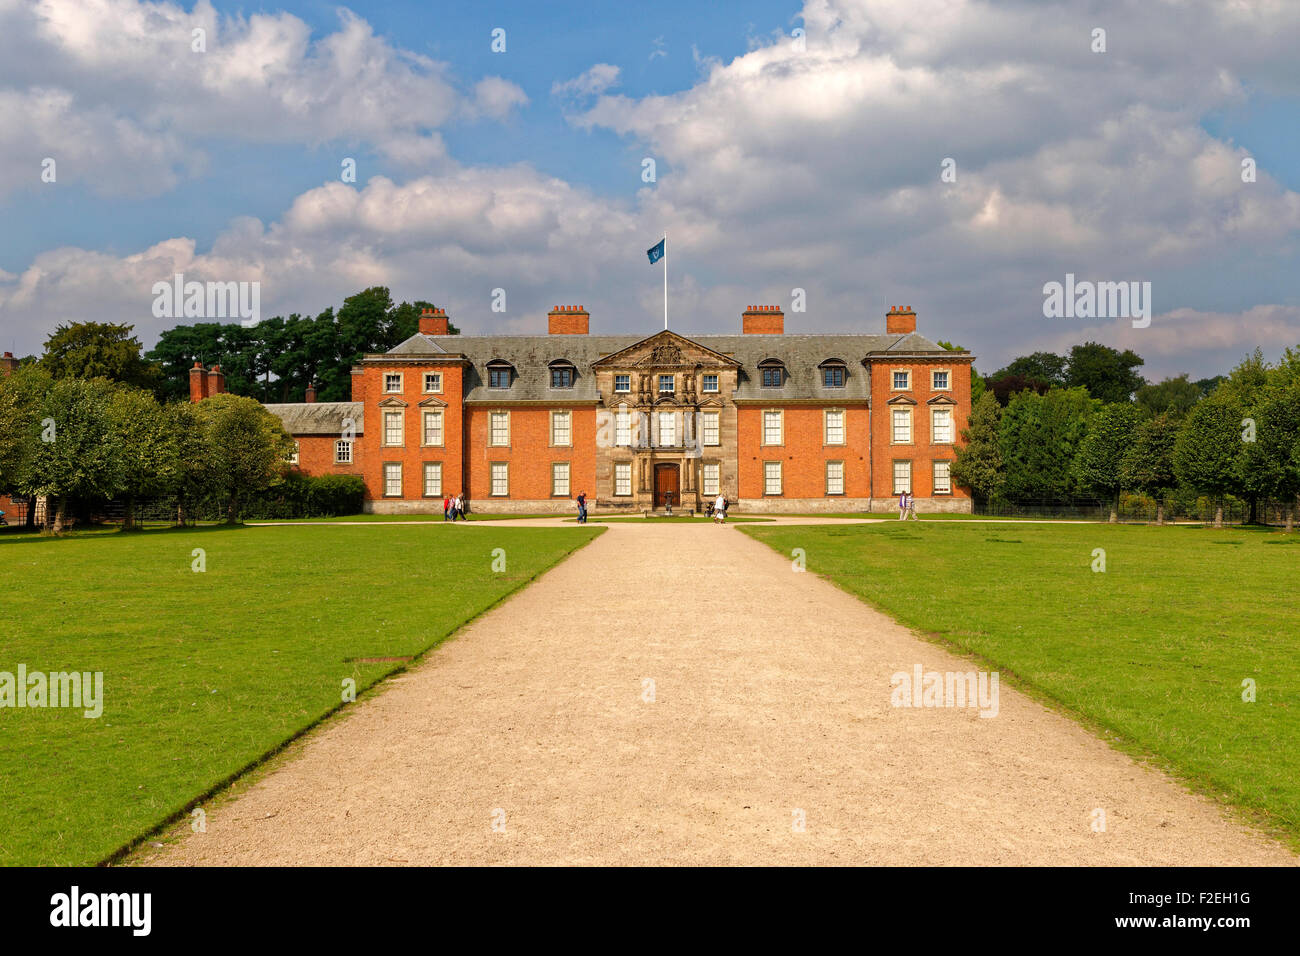 Dunham Massey Hall, Dunham Park, Altrincham, Cheshire. Greater Manchester. Former seat of The Lord Stamford. - Stock Image